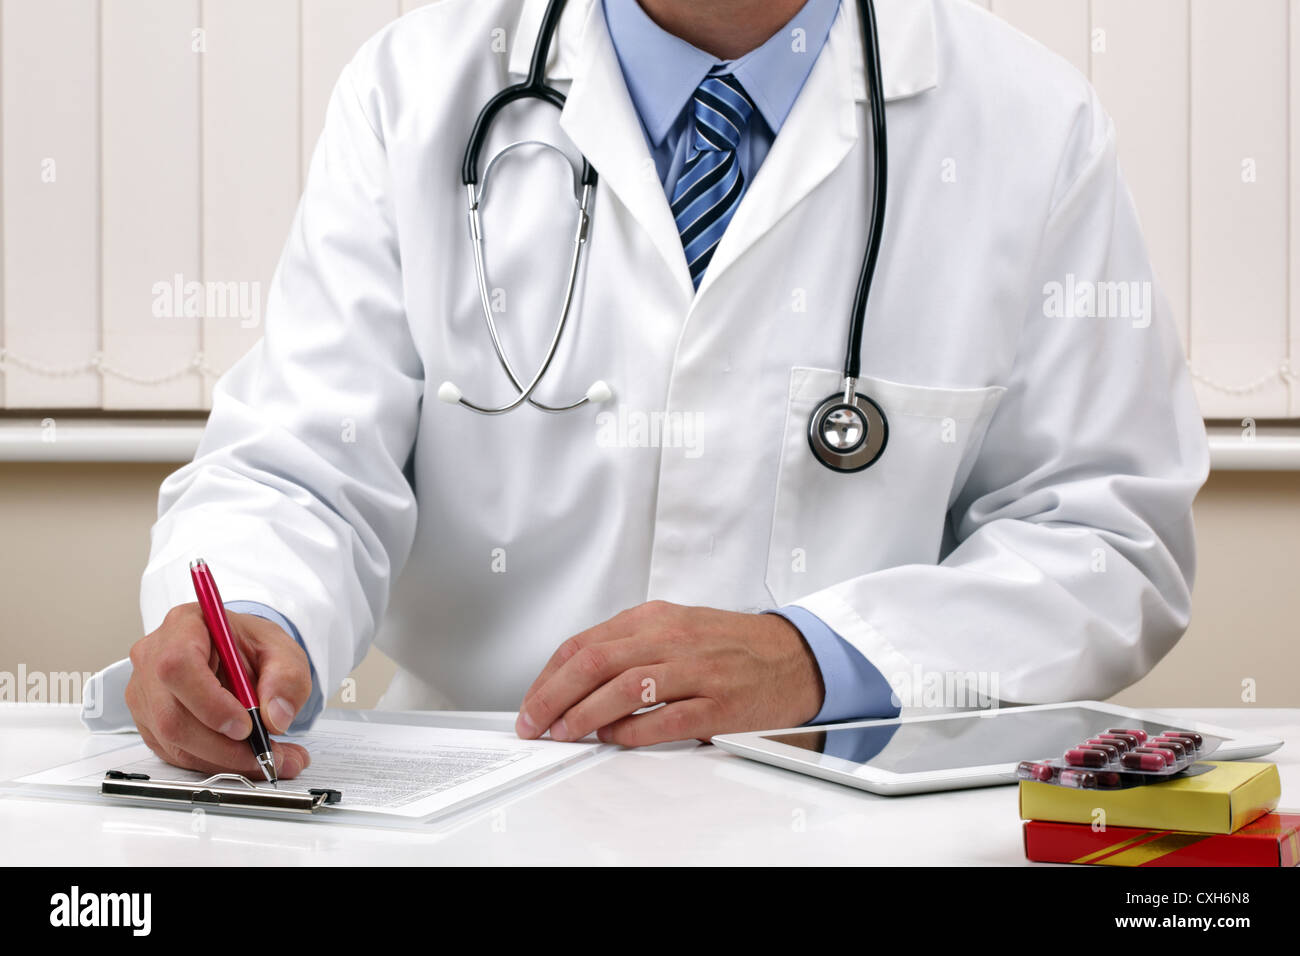 Doctor writing a prescription or medical examination notes - Stock Image